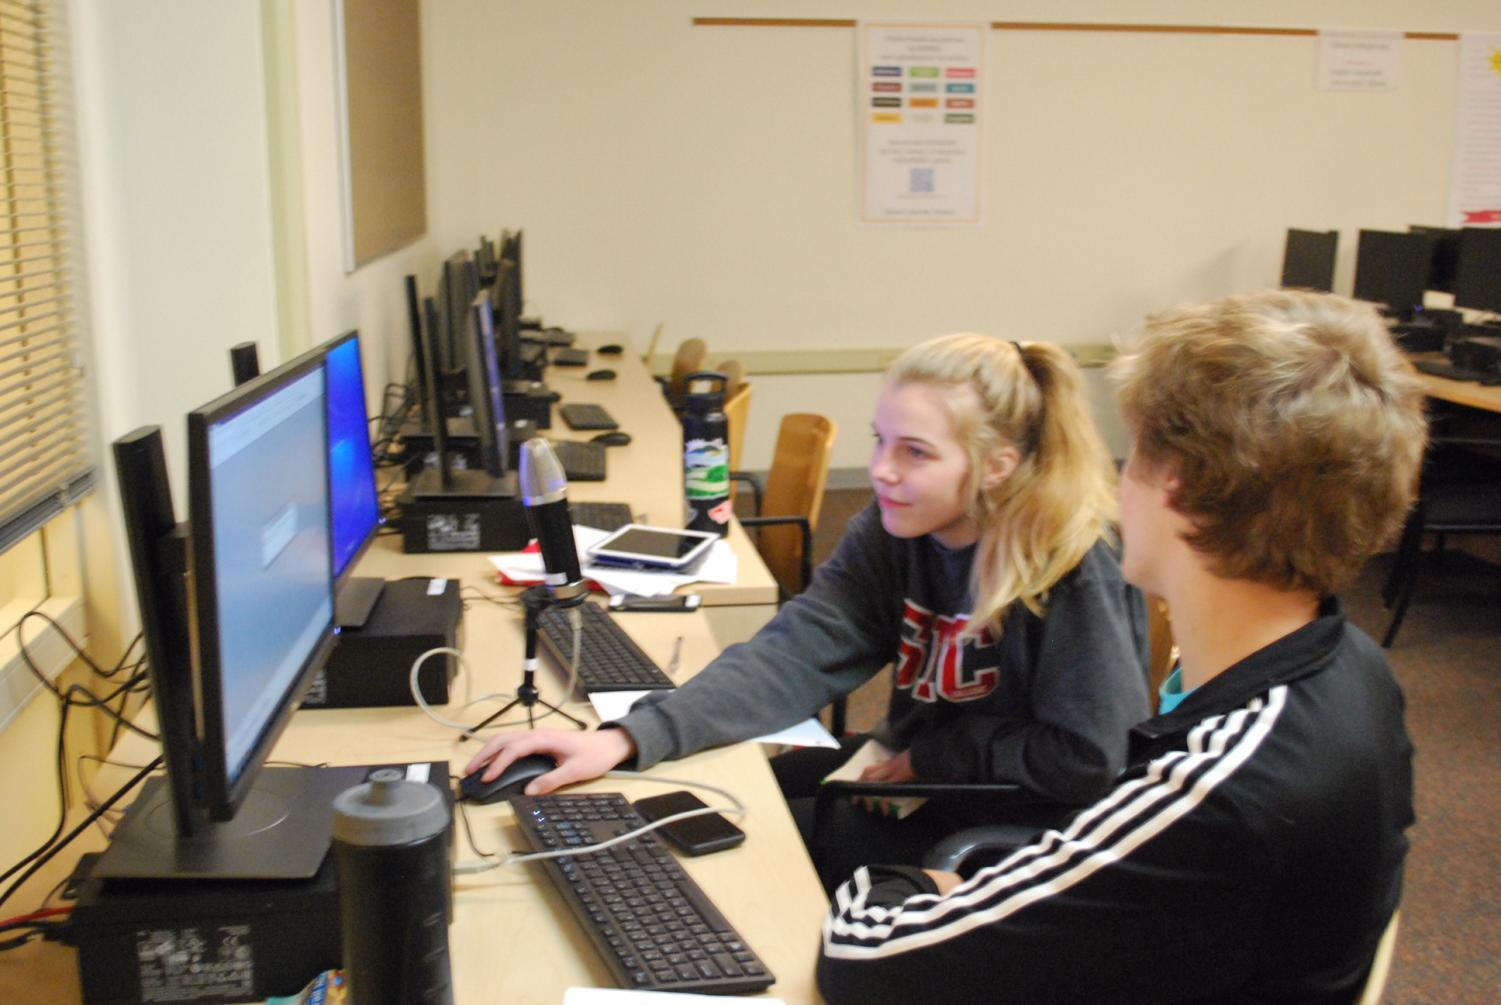 Faith and Media students Lenora Mathis and Jason Nasser-Marsh working on their most recent podcast, discussing the novel